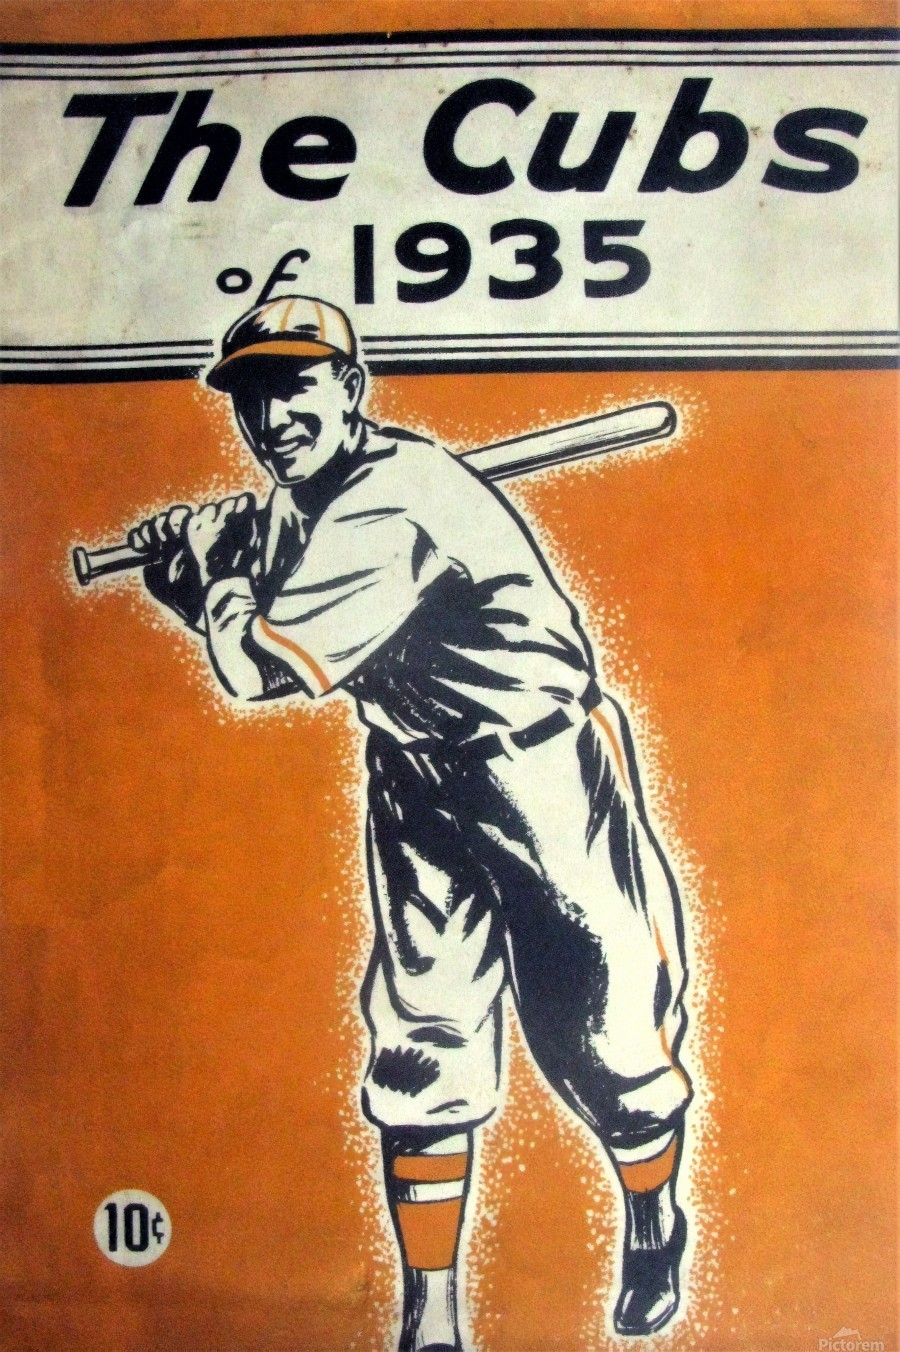 1935 Chicago Cubs Program Cover  Print